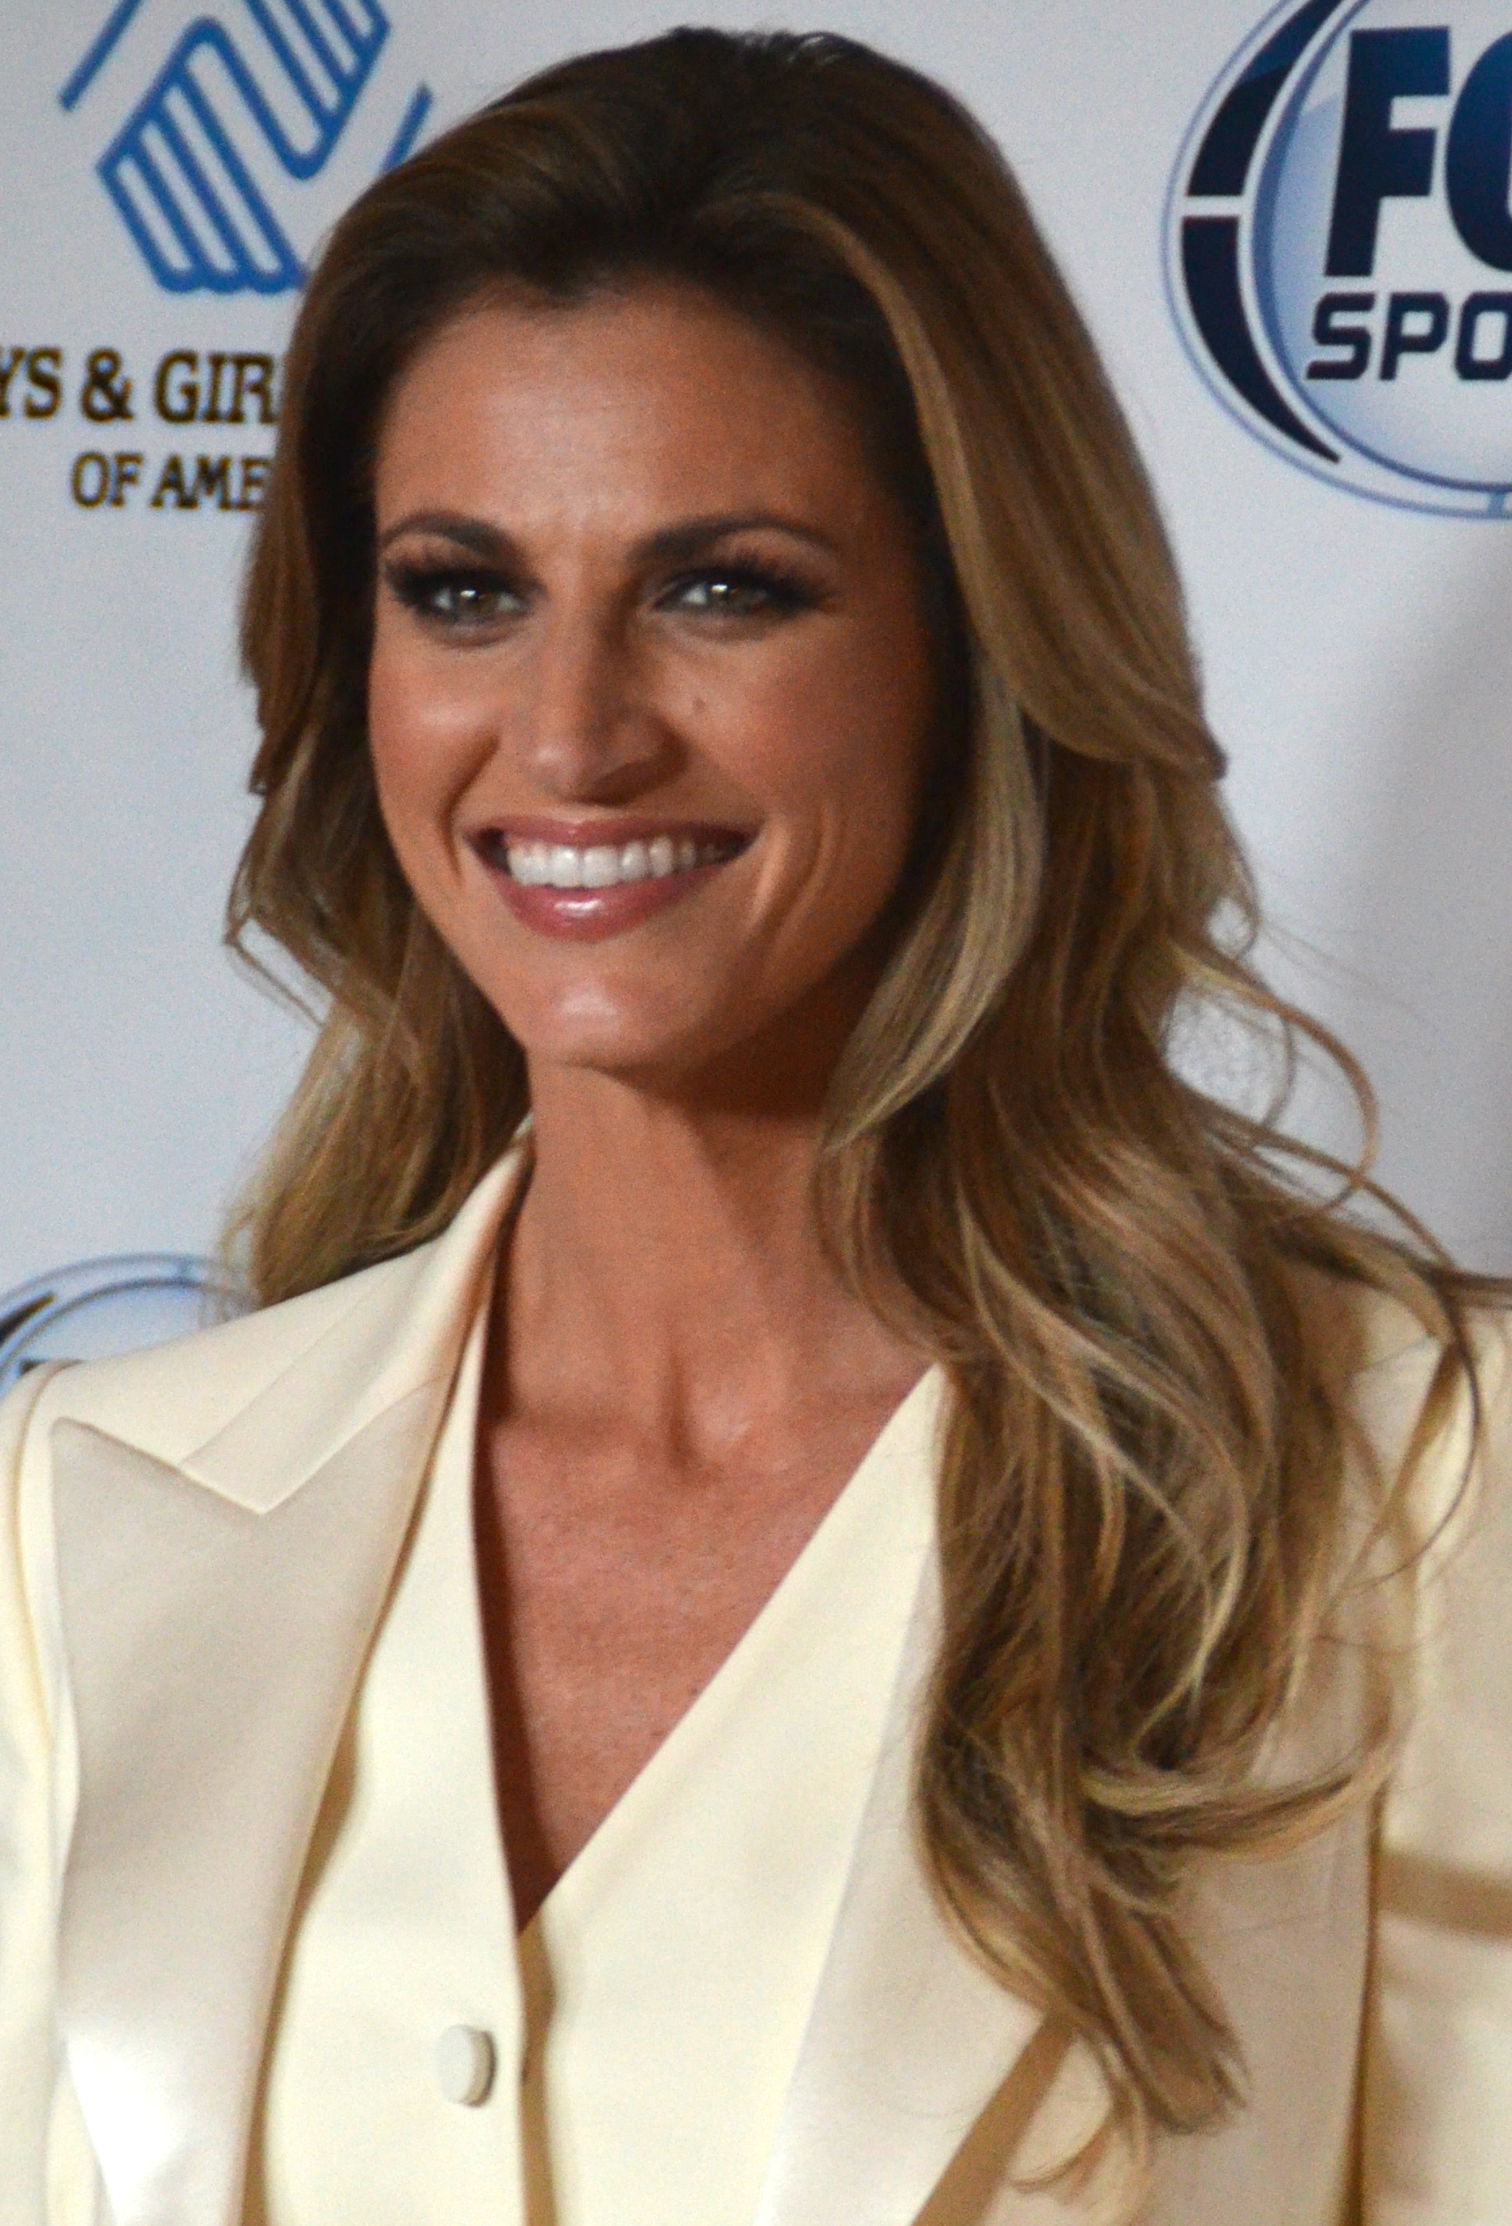 Photo of Erin Andrews: Television sports reporter for ESPN